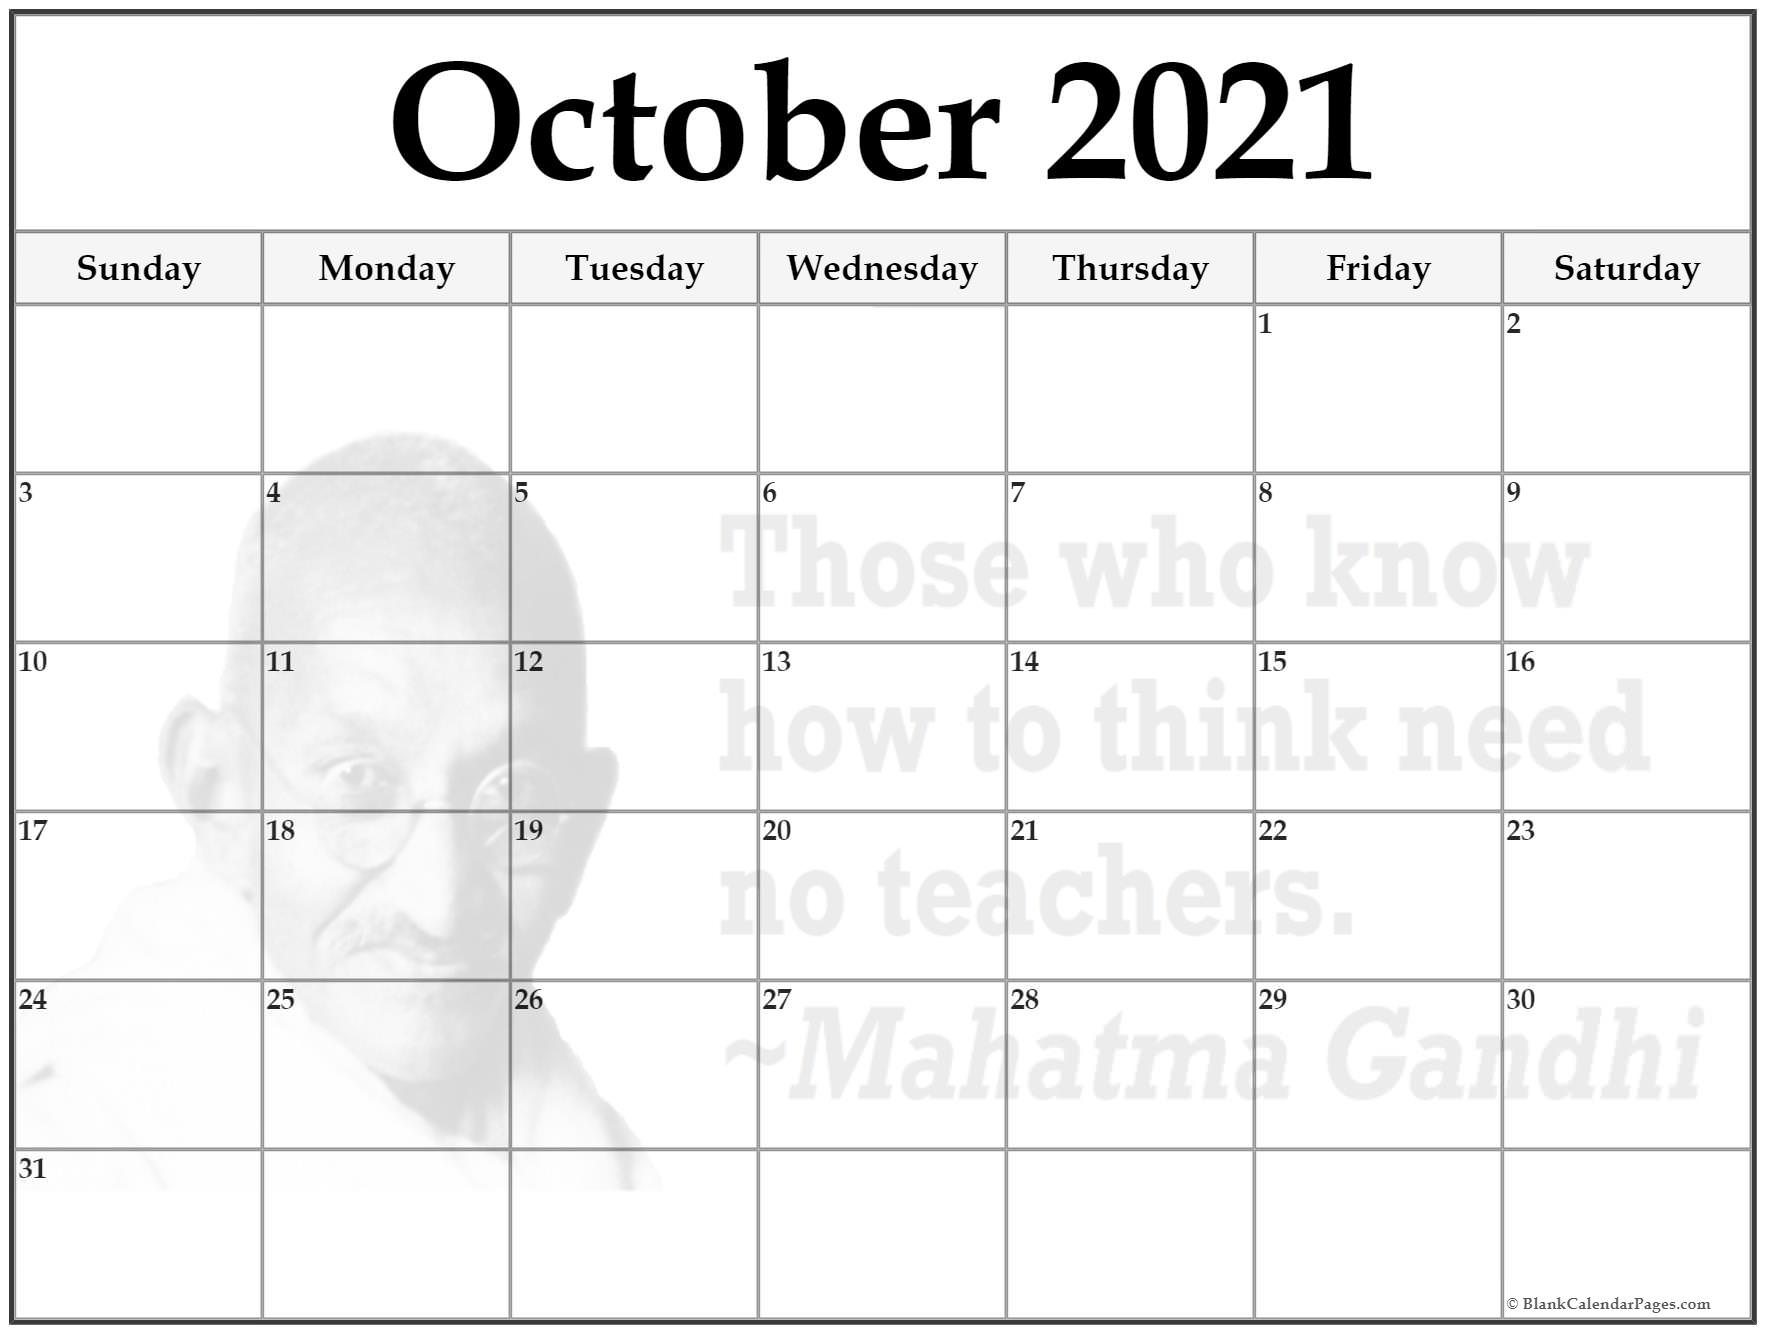 October 2018 monthly calendar template. Those who know how to think need no teachers. ~Mahatma Gandhi